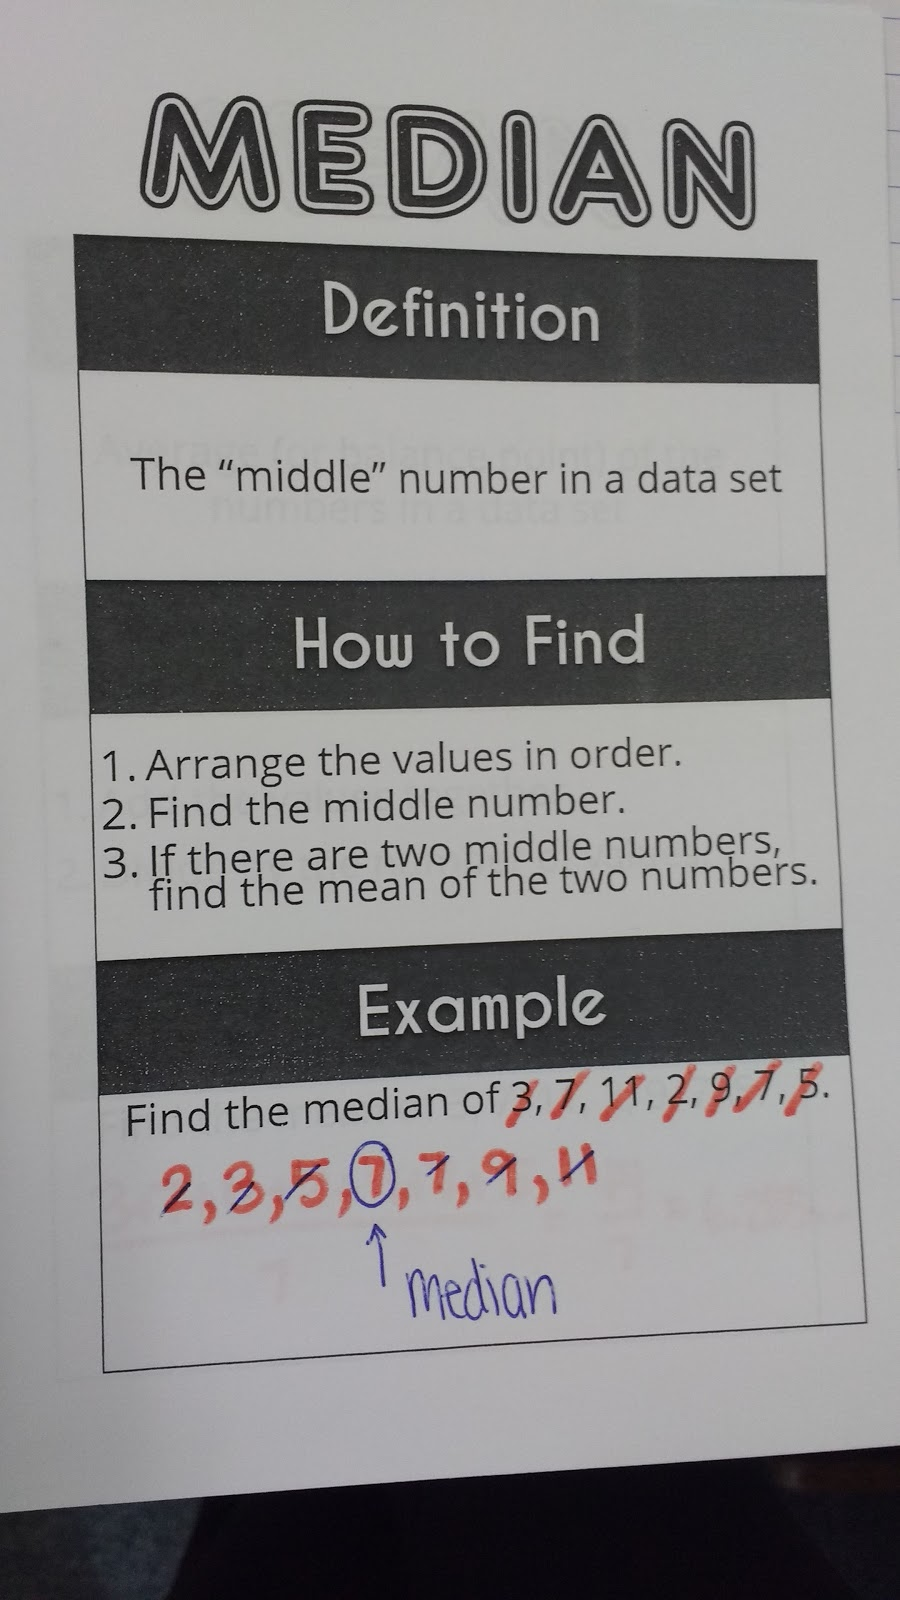 Notes For Finding Mean: